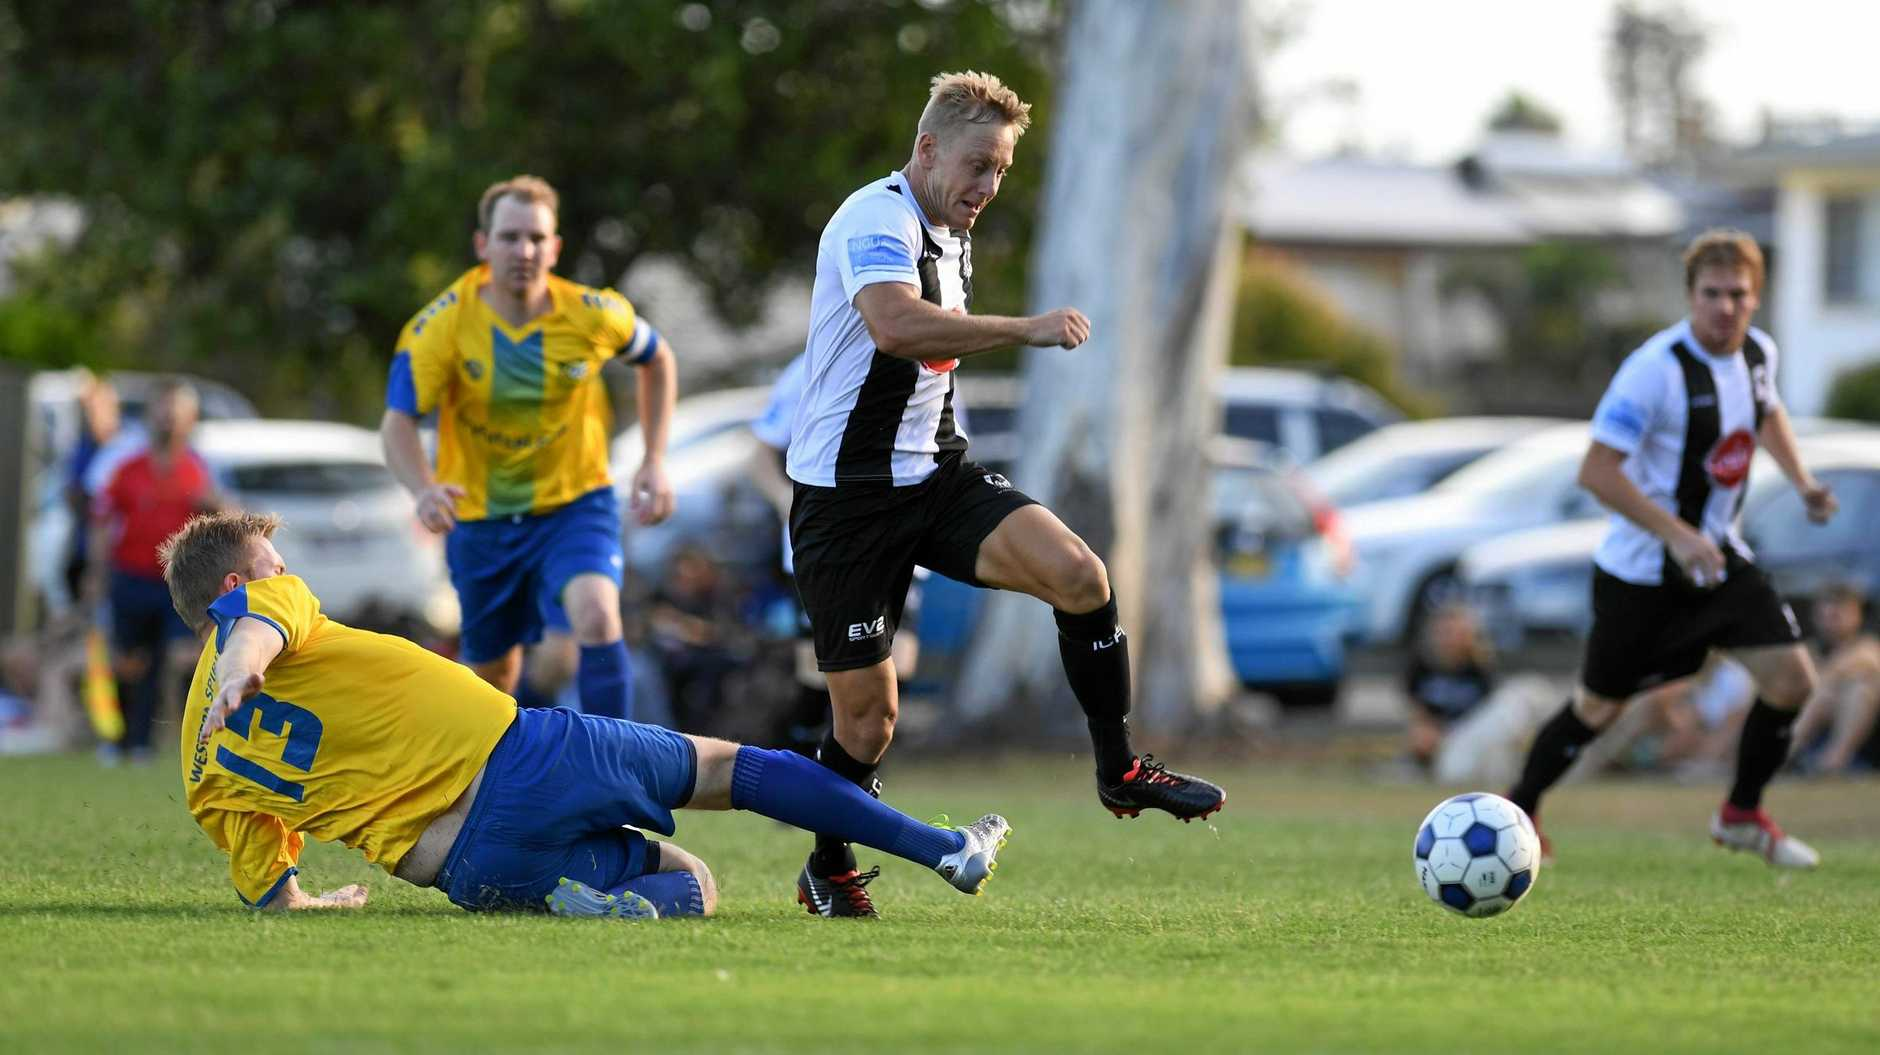 Western Spirit footballer Michael Wybranowski attempts a tackle on Ipswich City's Dane Grant during the recent local derby.